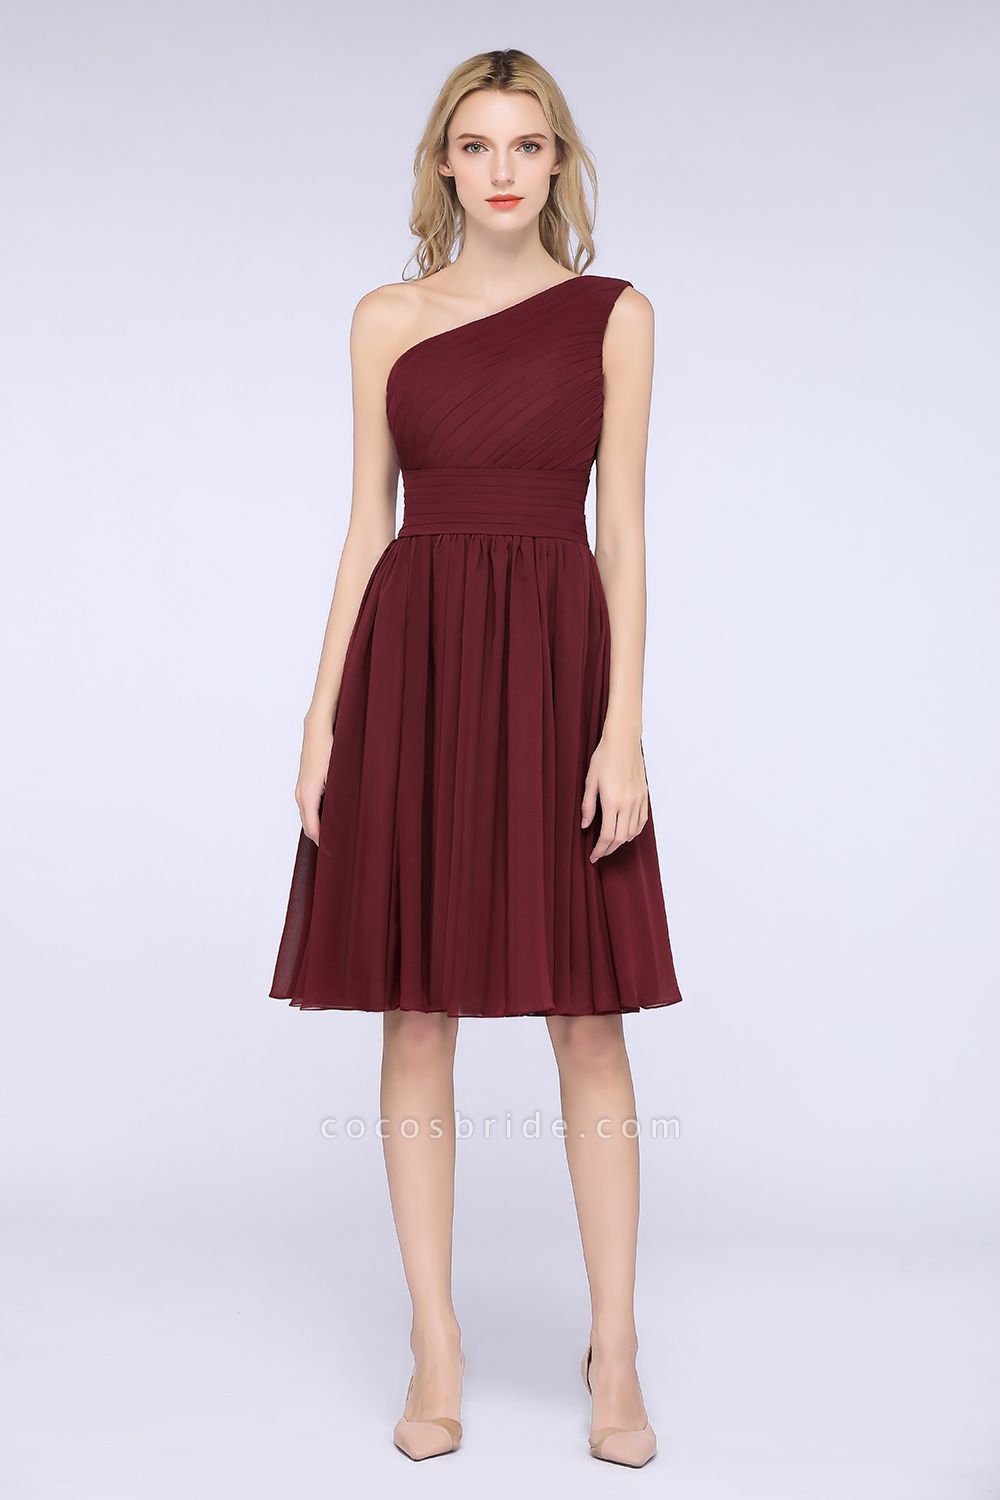 A-Line Chiffon One-Shoulder Sleeveless Knee-Length Bridesmaid Dress with Ruffles